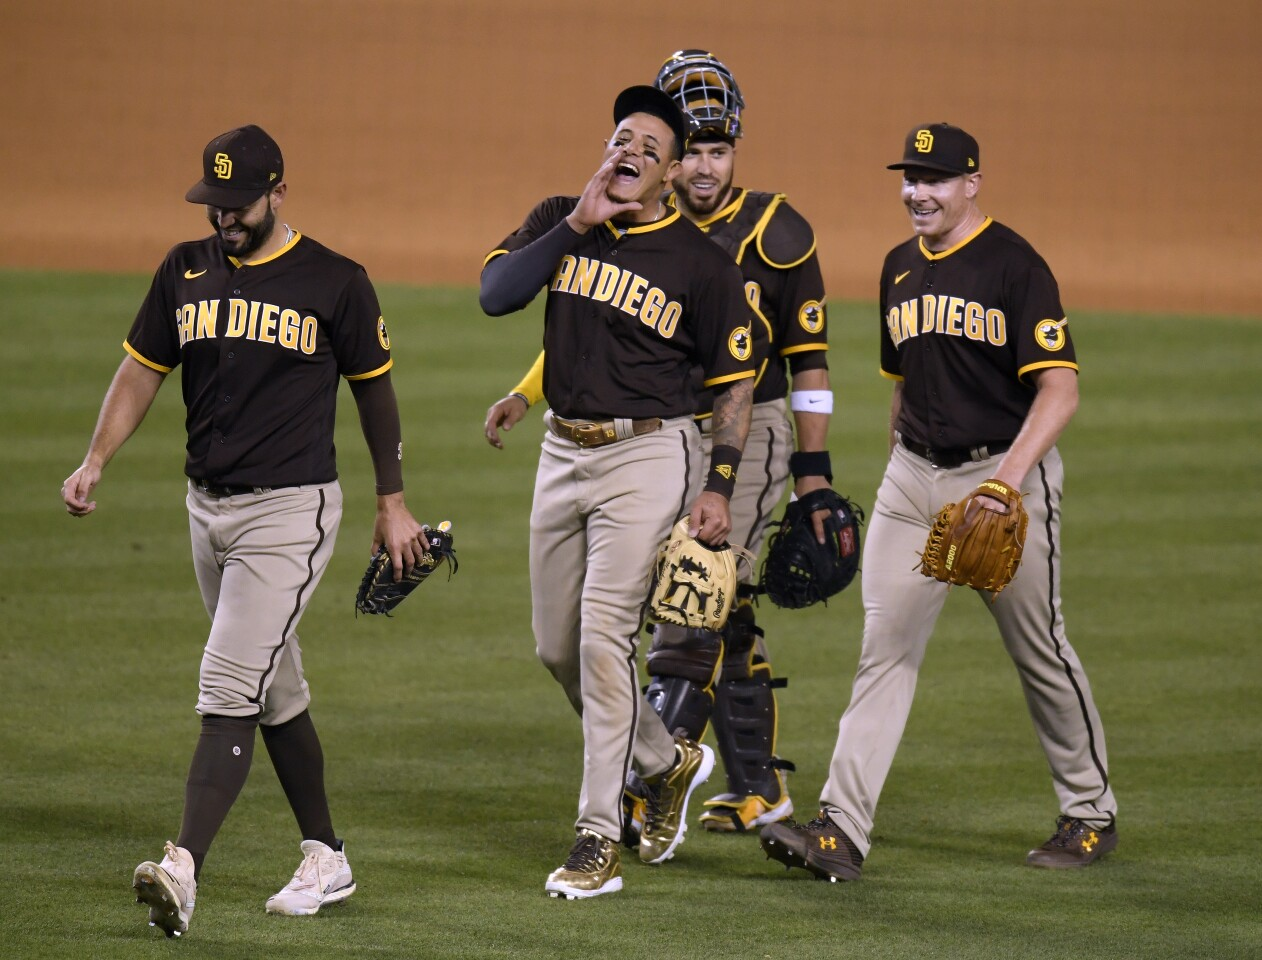 LOS ANGELES, CALIFORNIA - APRIL 25: (L-R) Eric Hosmer #30, Manny Machado #13, Victor Caratini #8 and Mark Melancon #33 of the San Diego Padres celebrate an 8-7 win over the Los Angeles Dodgers in eleventh innings at Dodger Stadium on April 25, 2021 in Los Angeles, California. (Photo by Harry How/Getty Images)